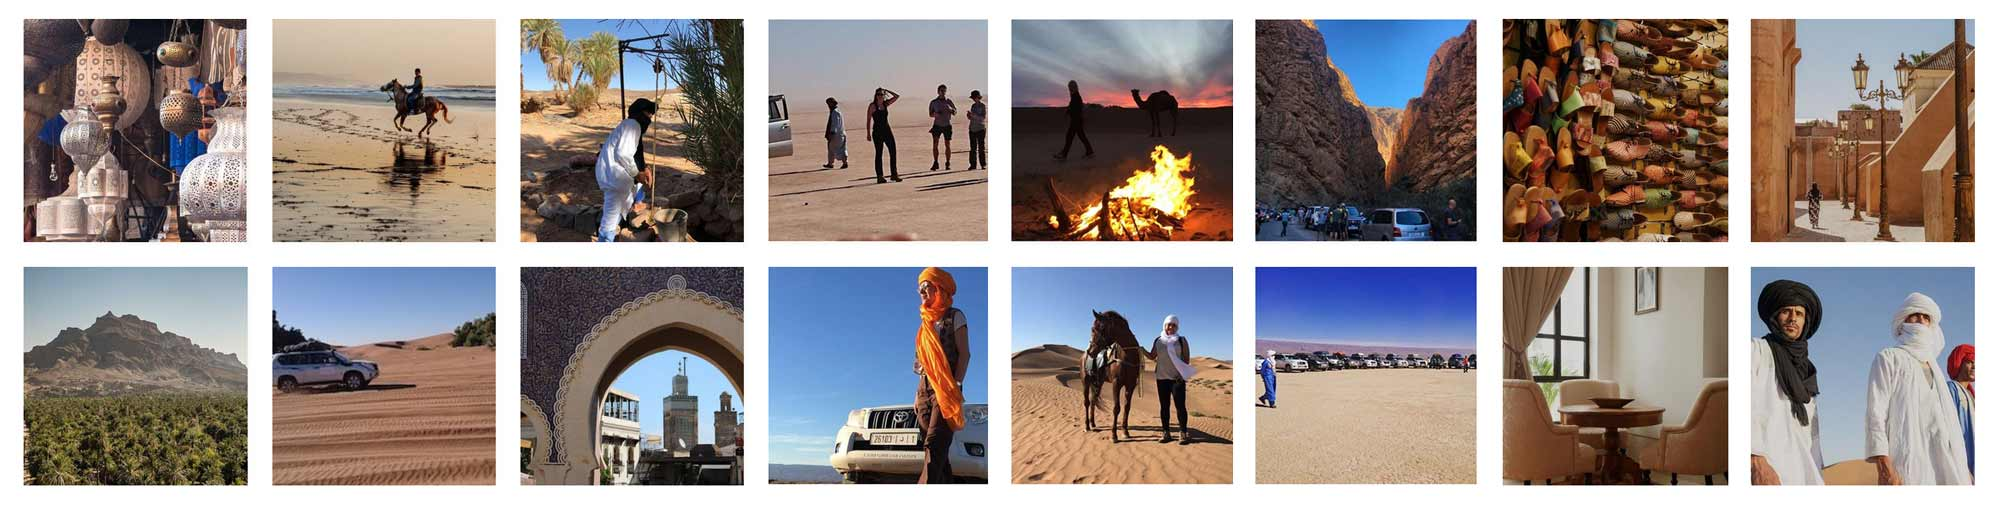 Instagram Photos for Moroccan Journeys, Morocco Holidays